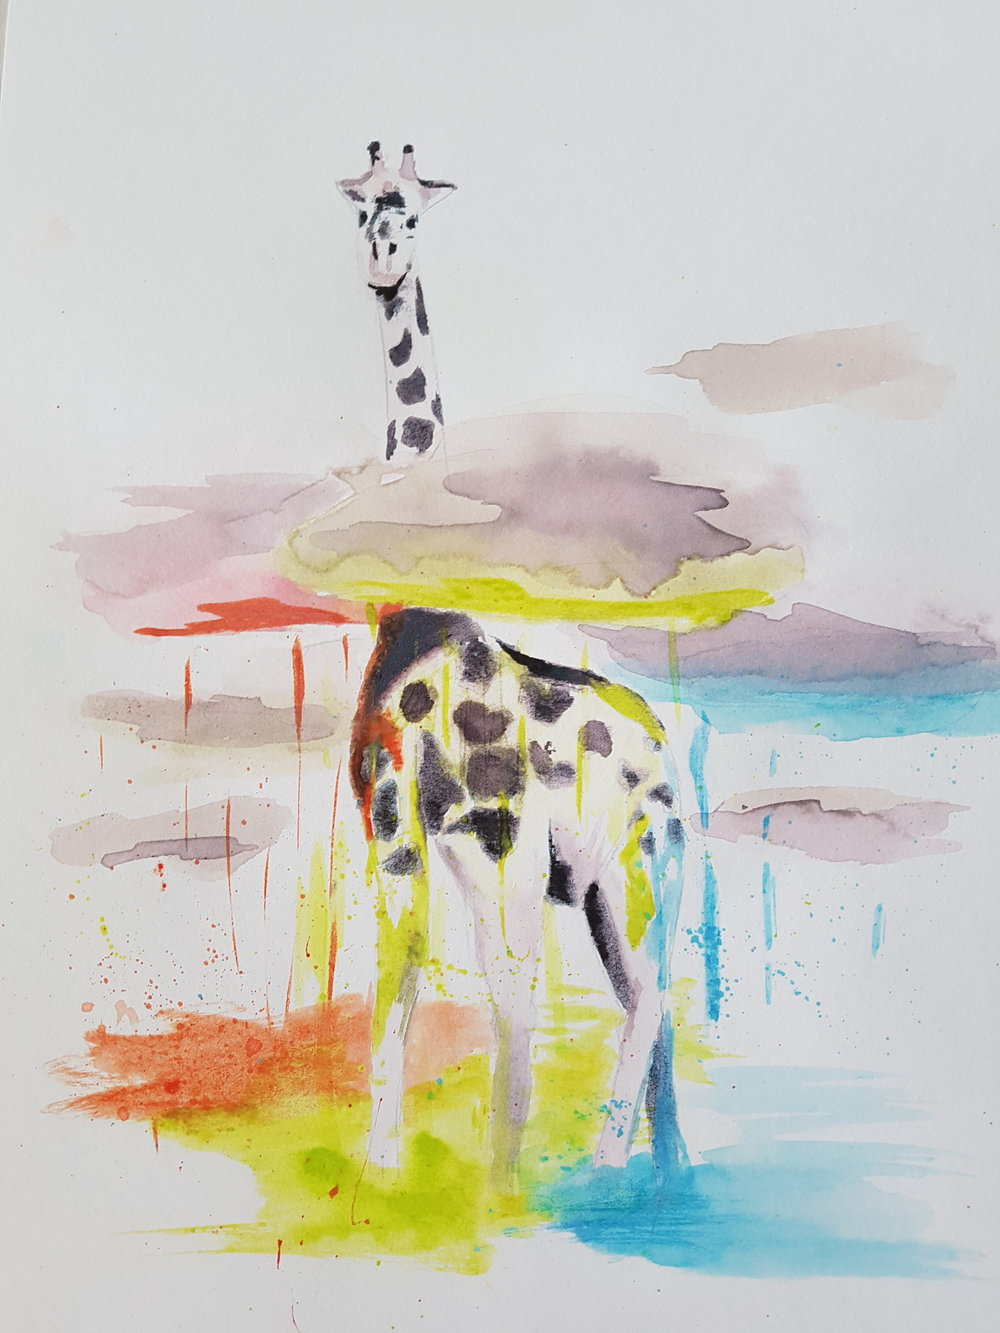 """Raining Color"" 8x12  This was one of the very first paintings I did with my Crayola watercolor set. I did a series of watercolor animals I found online, where the goal was to simply paint what I saw. I chose this giraffe because the crayola colors were so wild and bright that I knew they wouldn't look natural in any kind of landscape. So I picked a painting where I could break the rules a little. Not to mention I loved the original idea (credit to Phillip Grein at  boredpanda.com )."